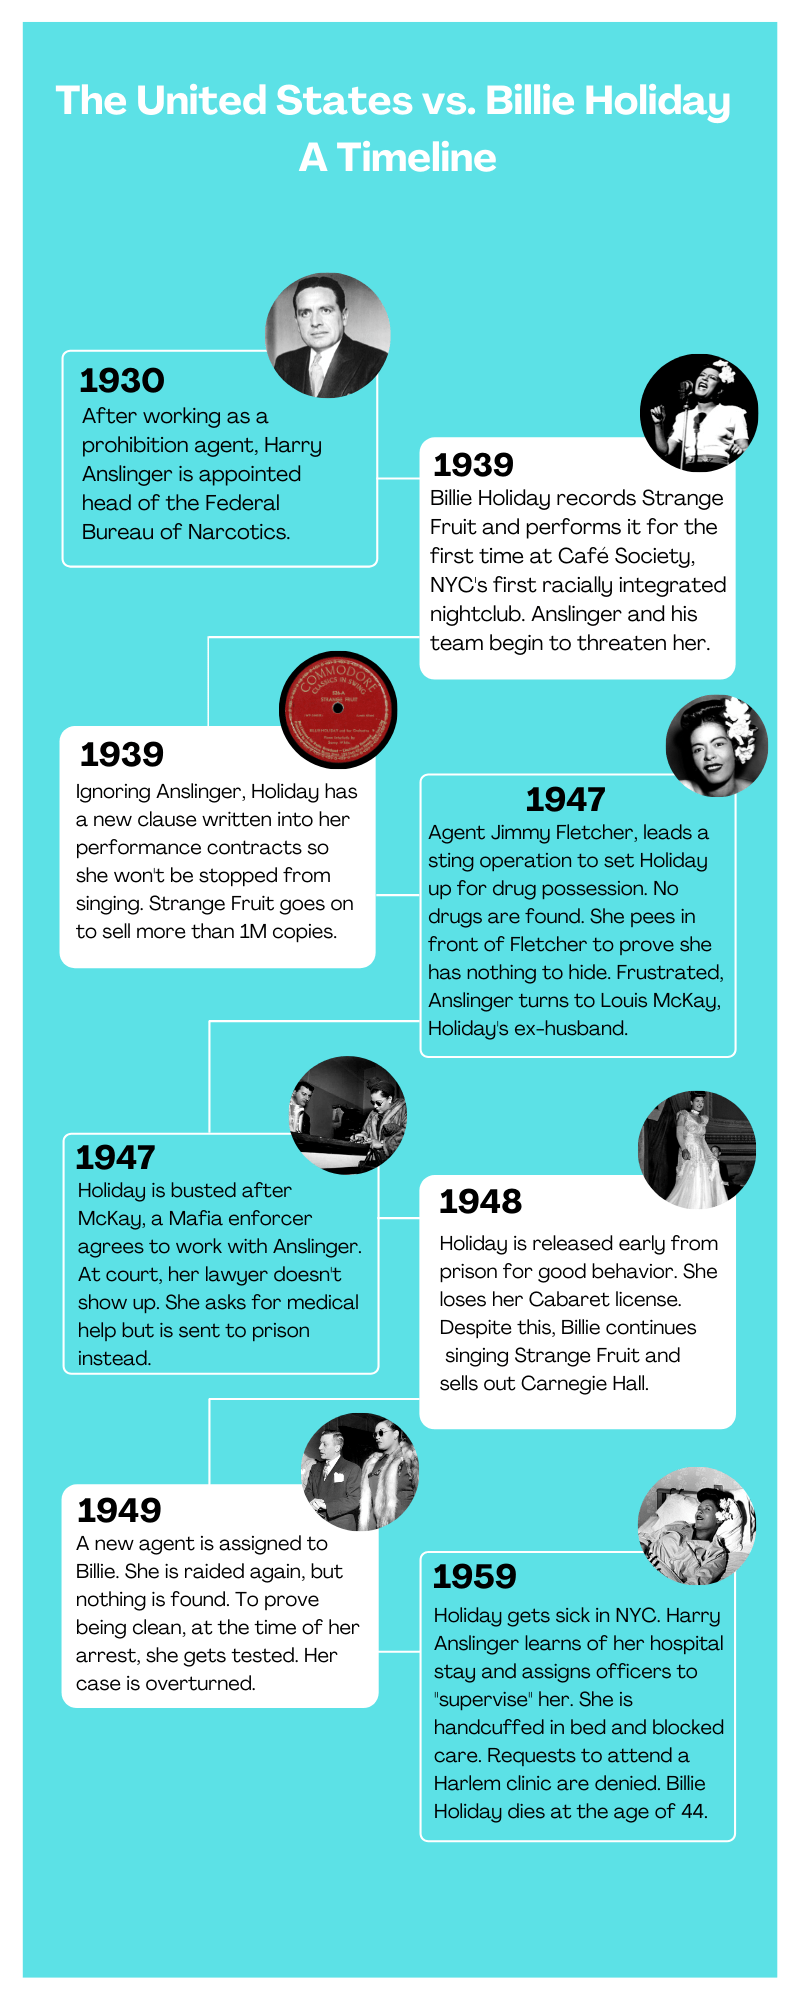 Billie Holiday Timeline